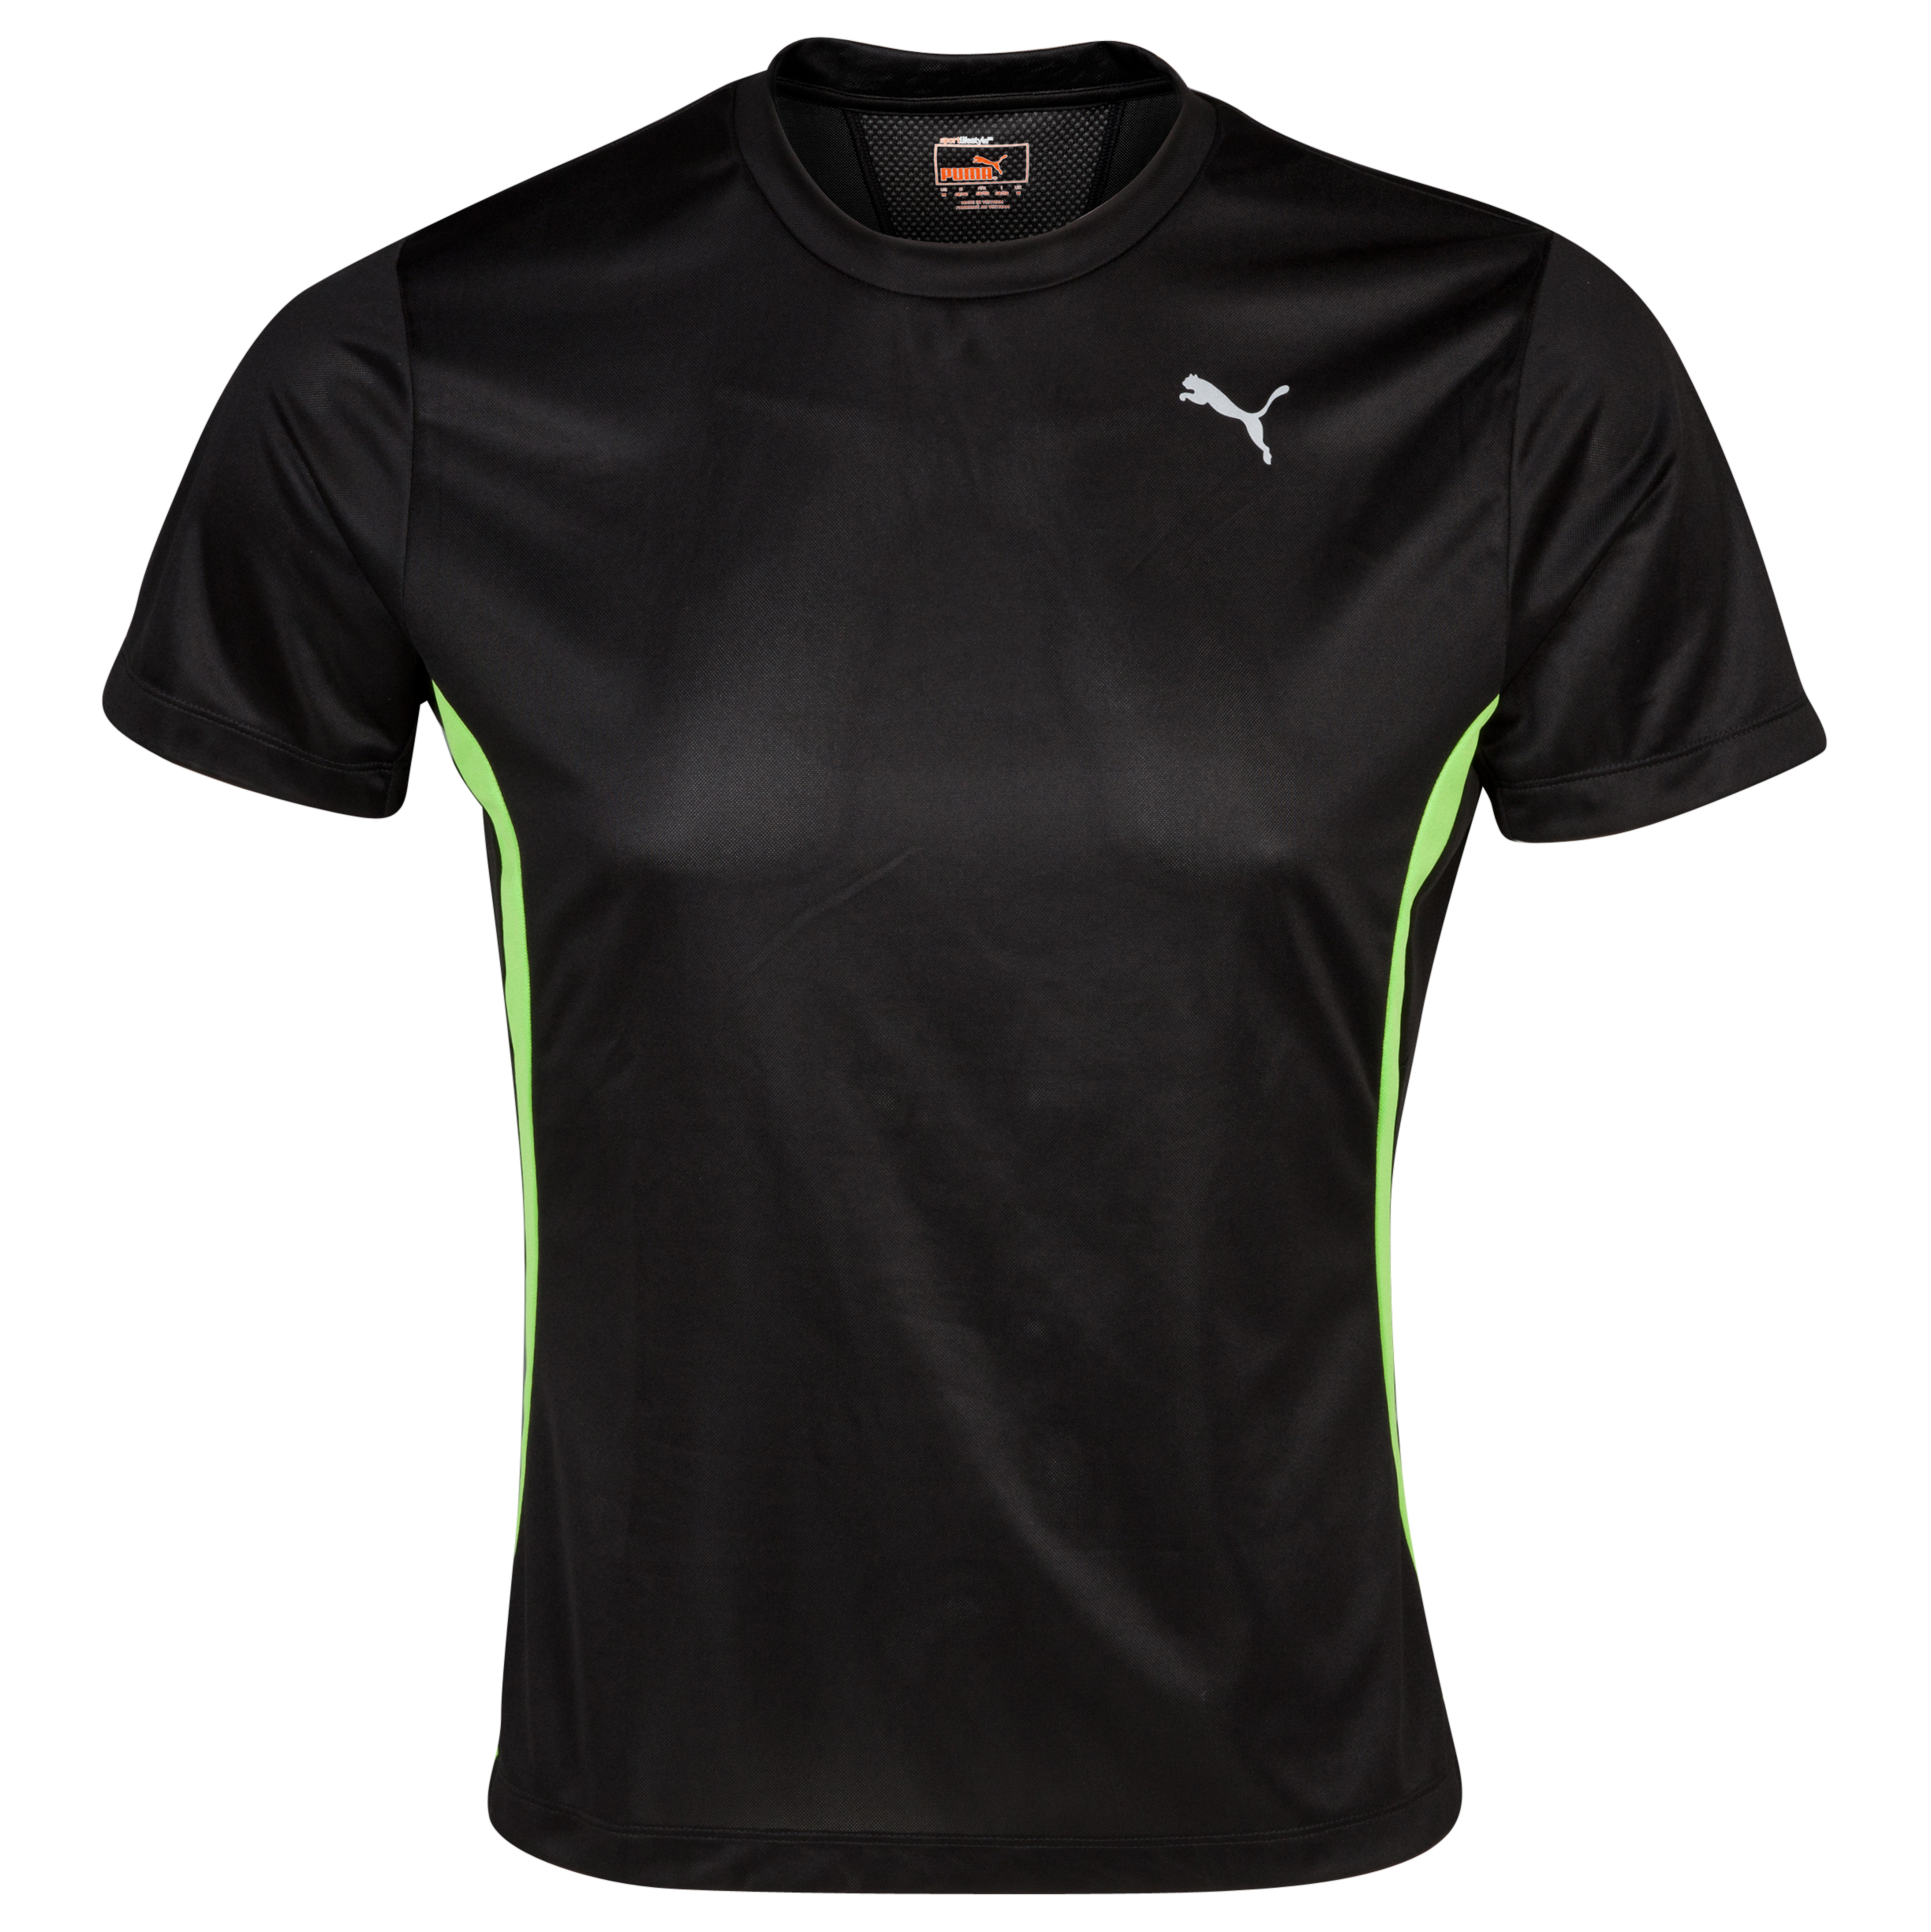 Puma PE Running S/S T-Shirt - Black/Jasmine Green